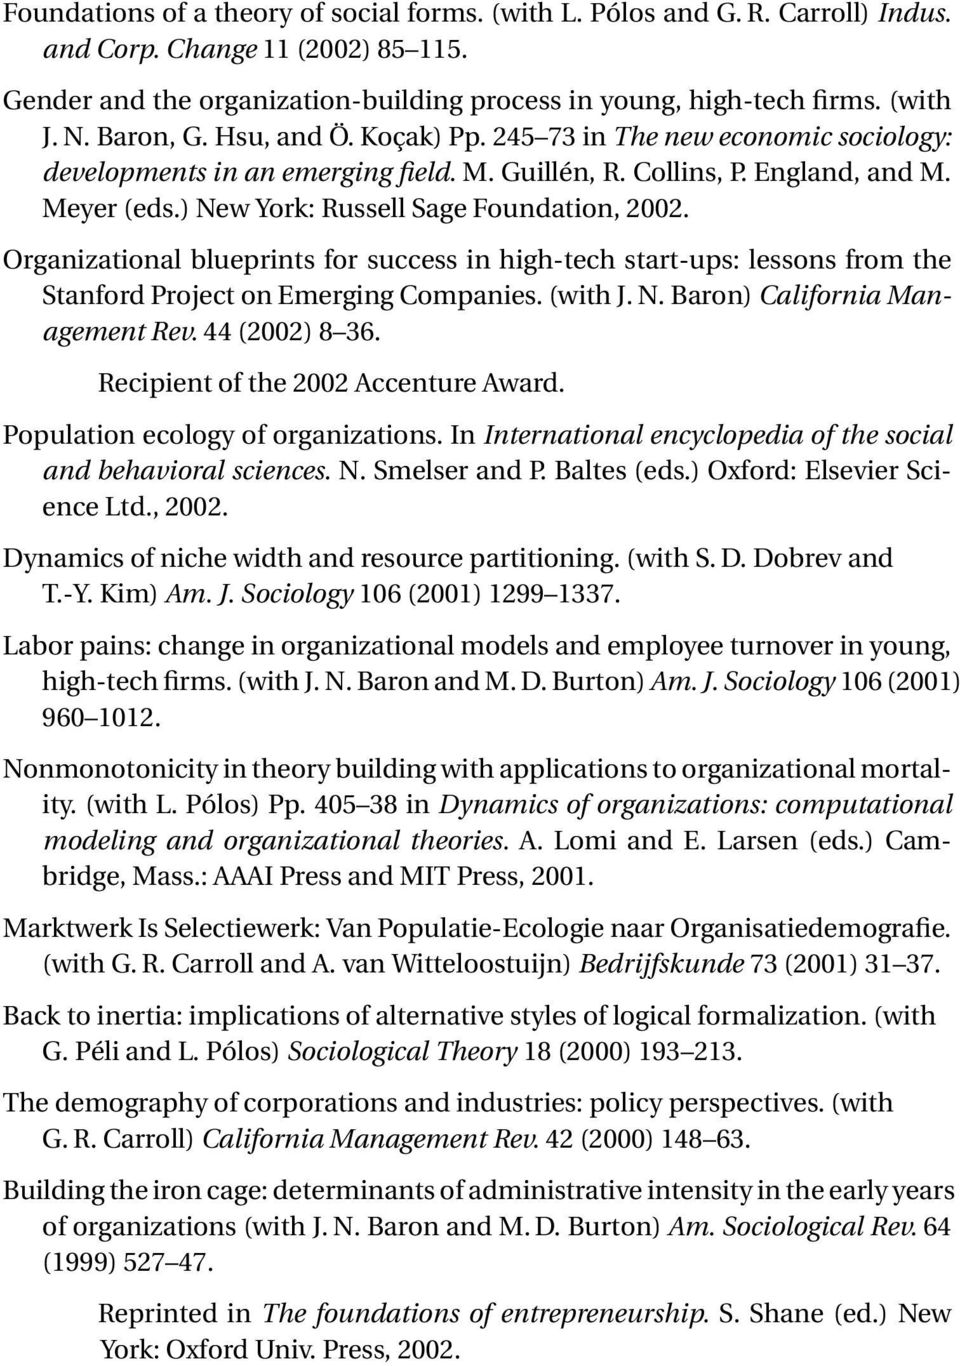 ) New York: Russell Sage Foundation, 2002. Organizational blueprints for success in high-tech start-ups: lessons from the Stanford Project on Emerging Companies. (with J. N. Baron) California Management Rev.